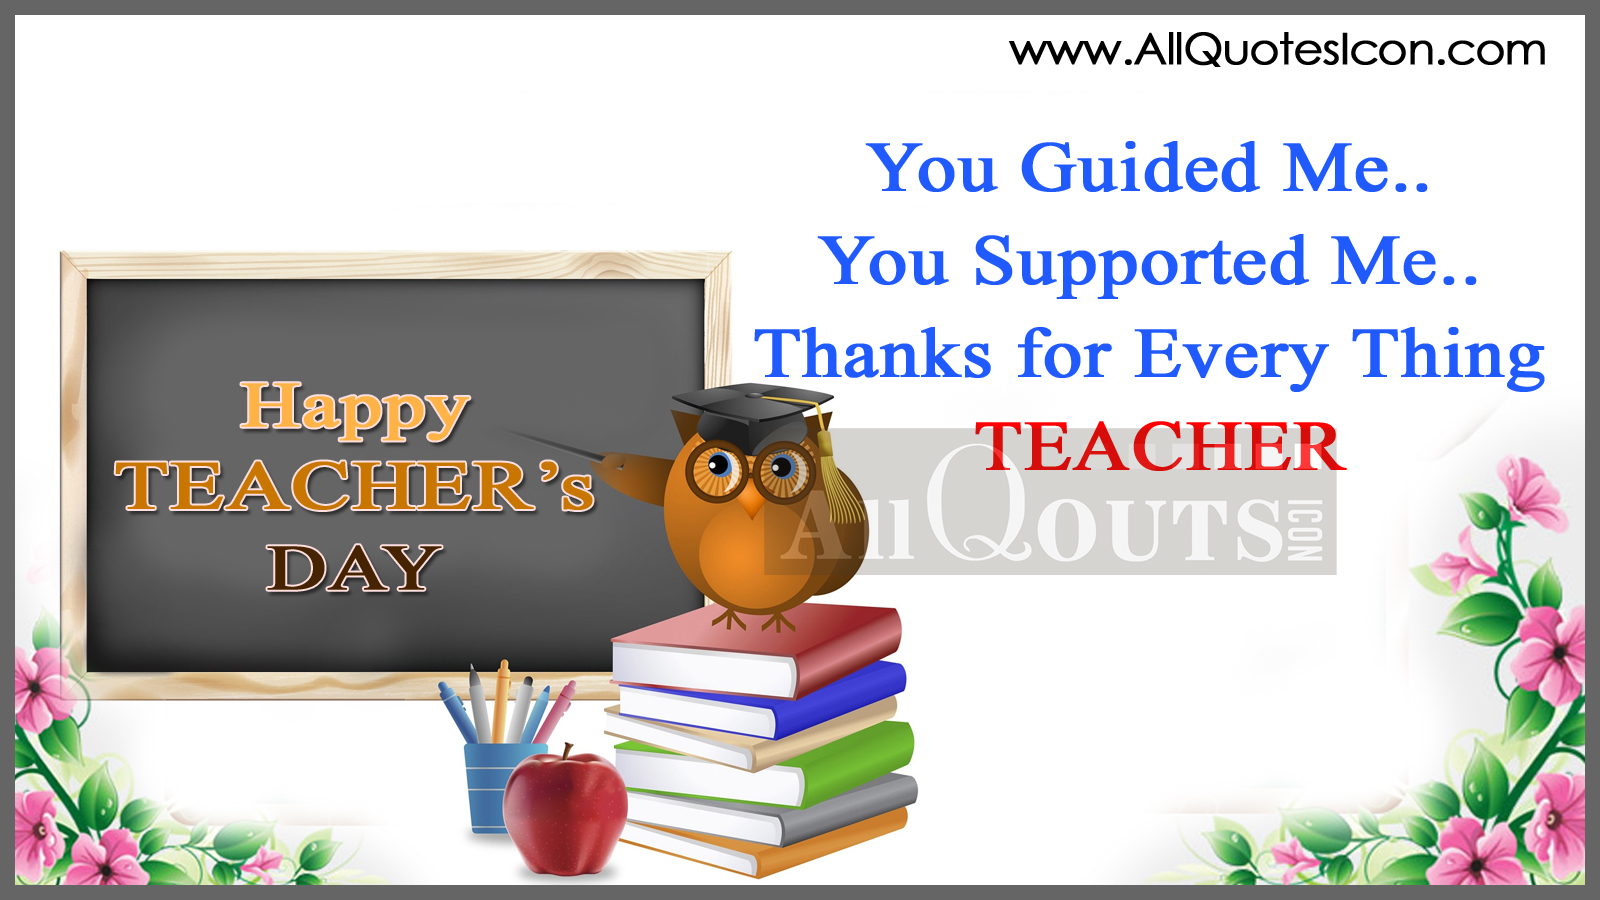 Happy teachers day wishes quotes with wonderful images in english teachers day quotes in cards thecheapjerseys Choice Image